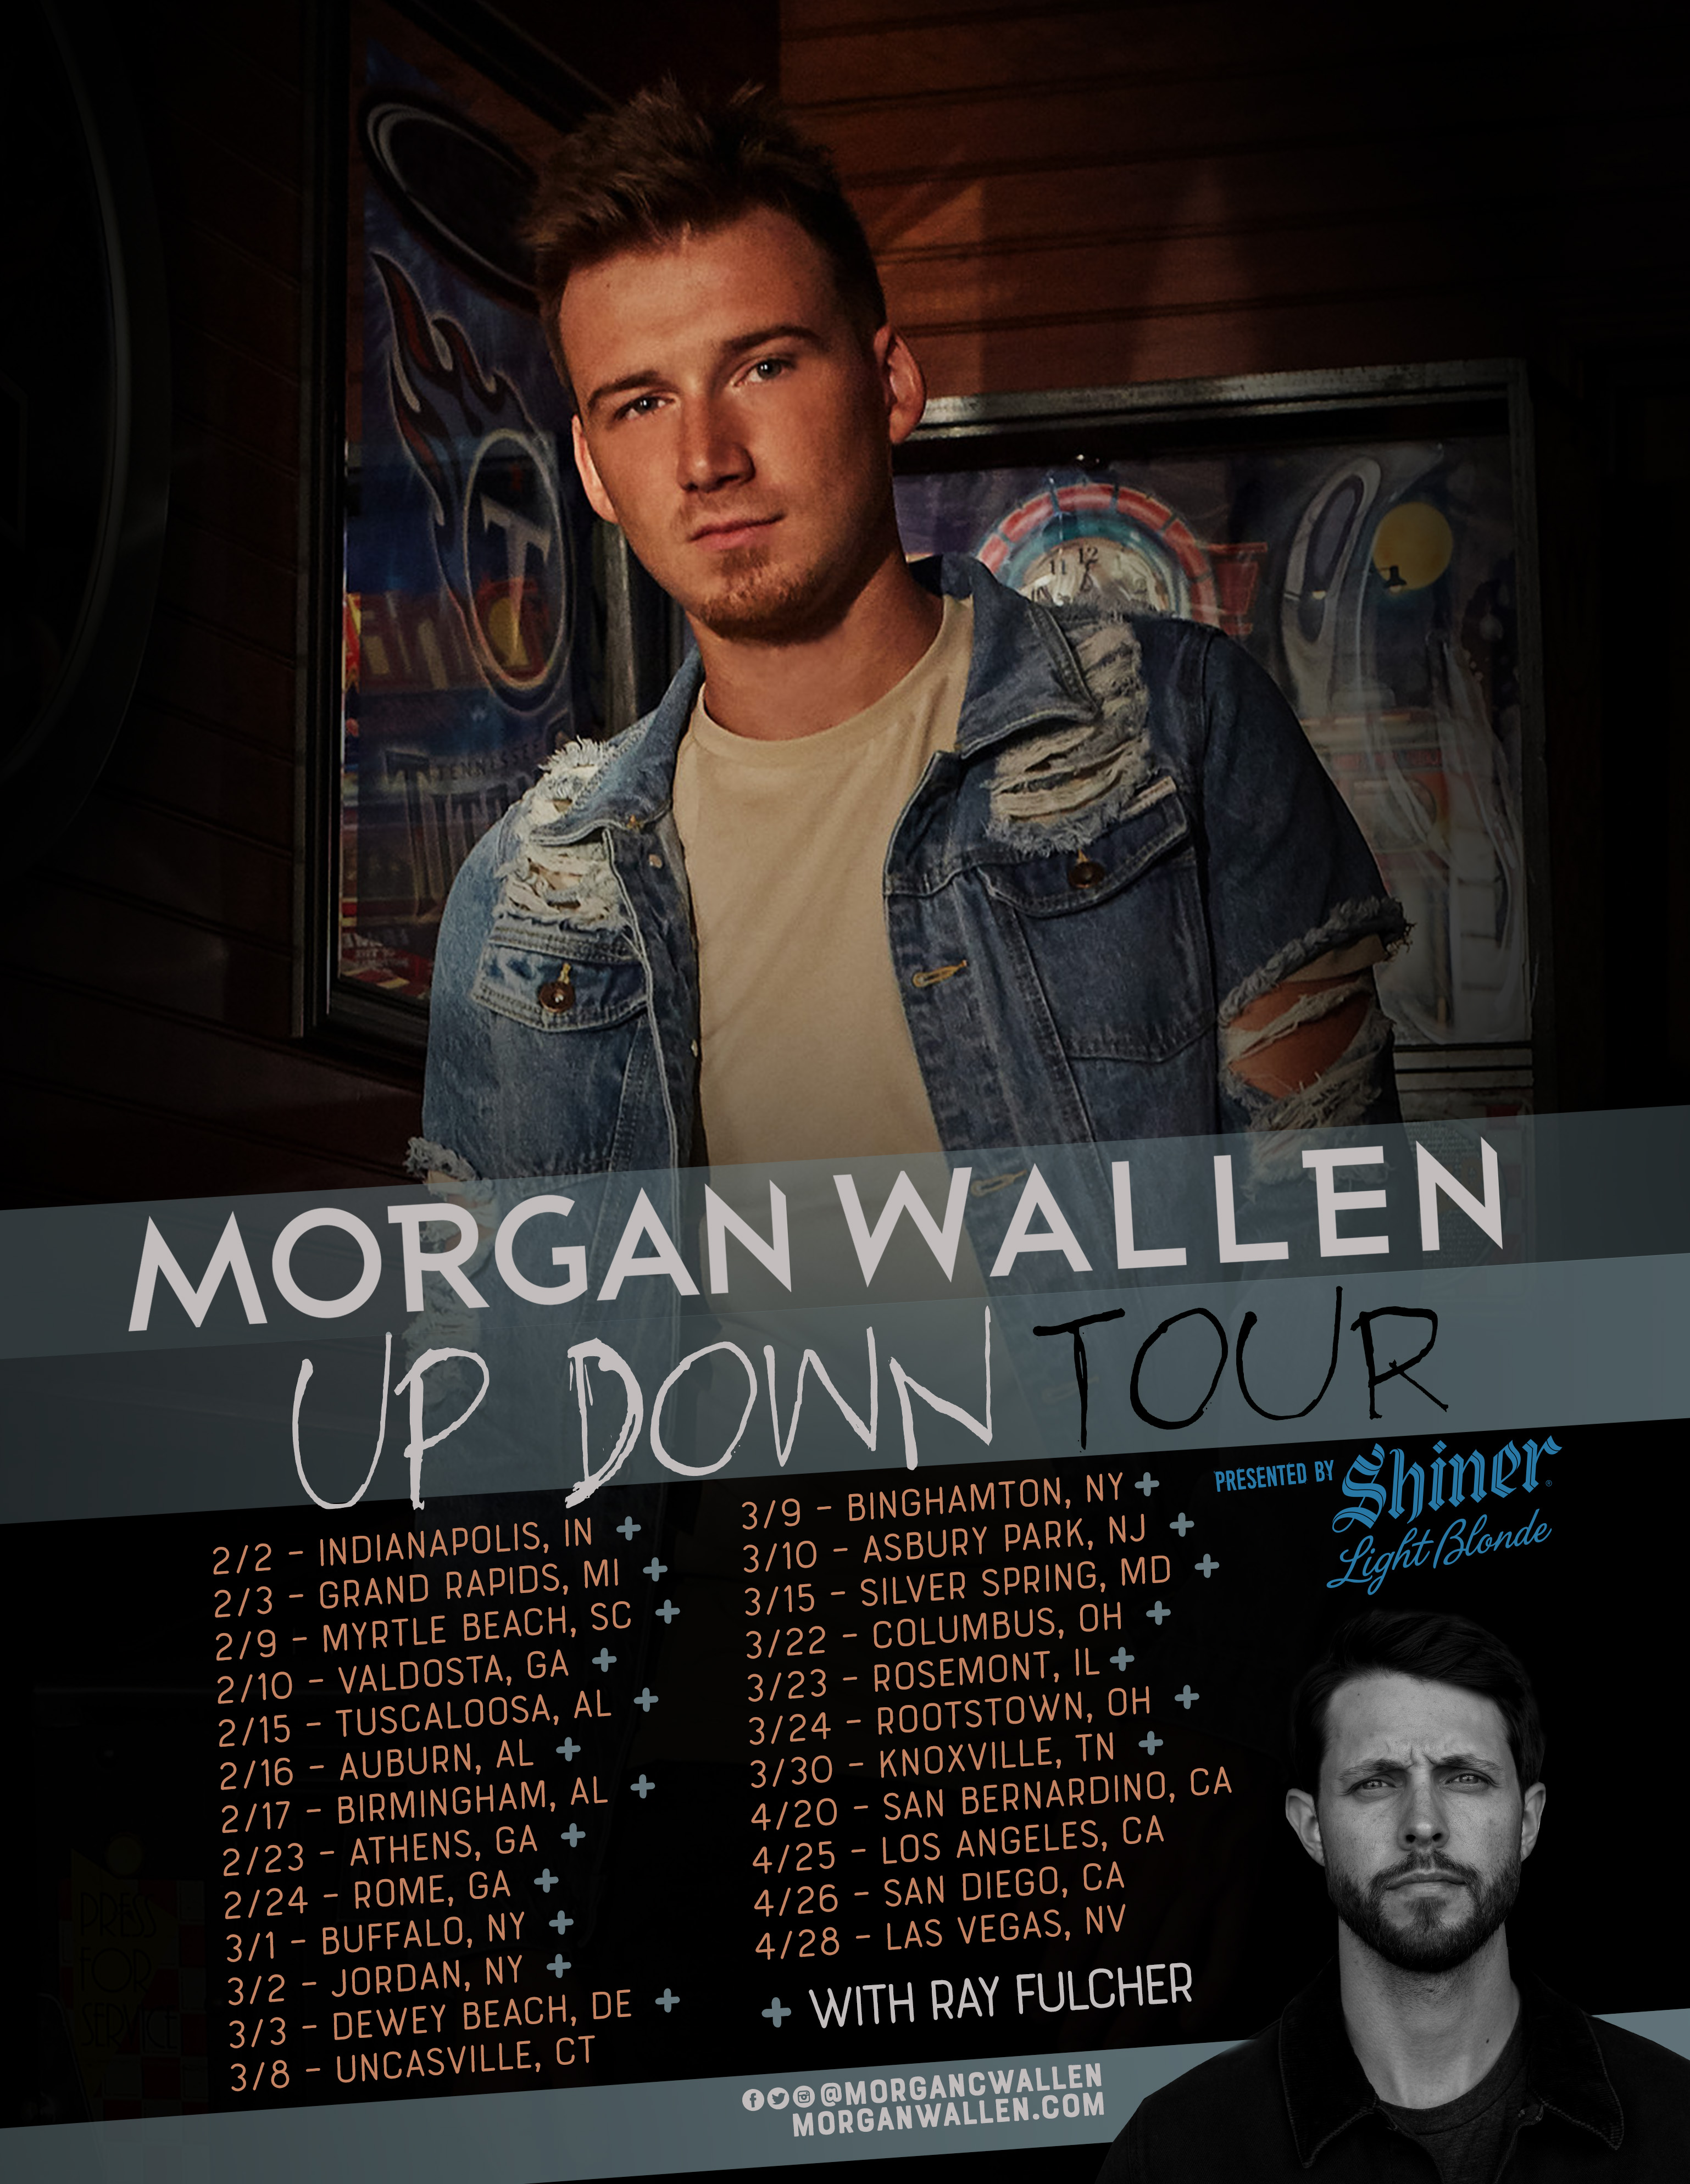 Morgan Wallen set for headlining Up Down Tour presented by Shiner Light Blonde